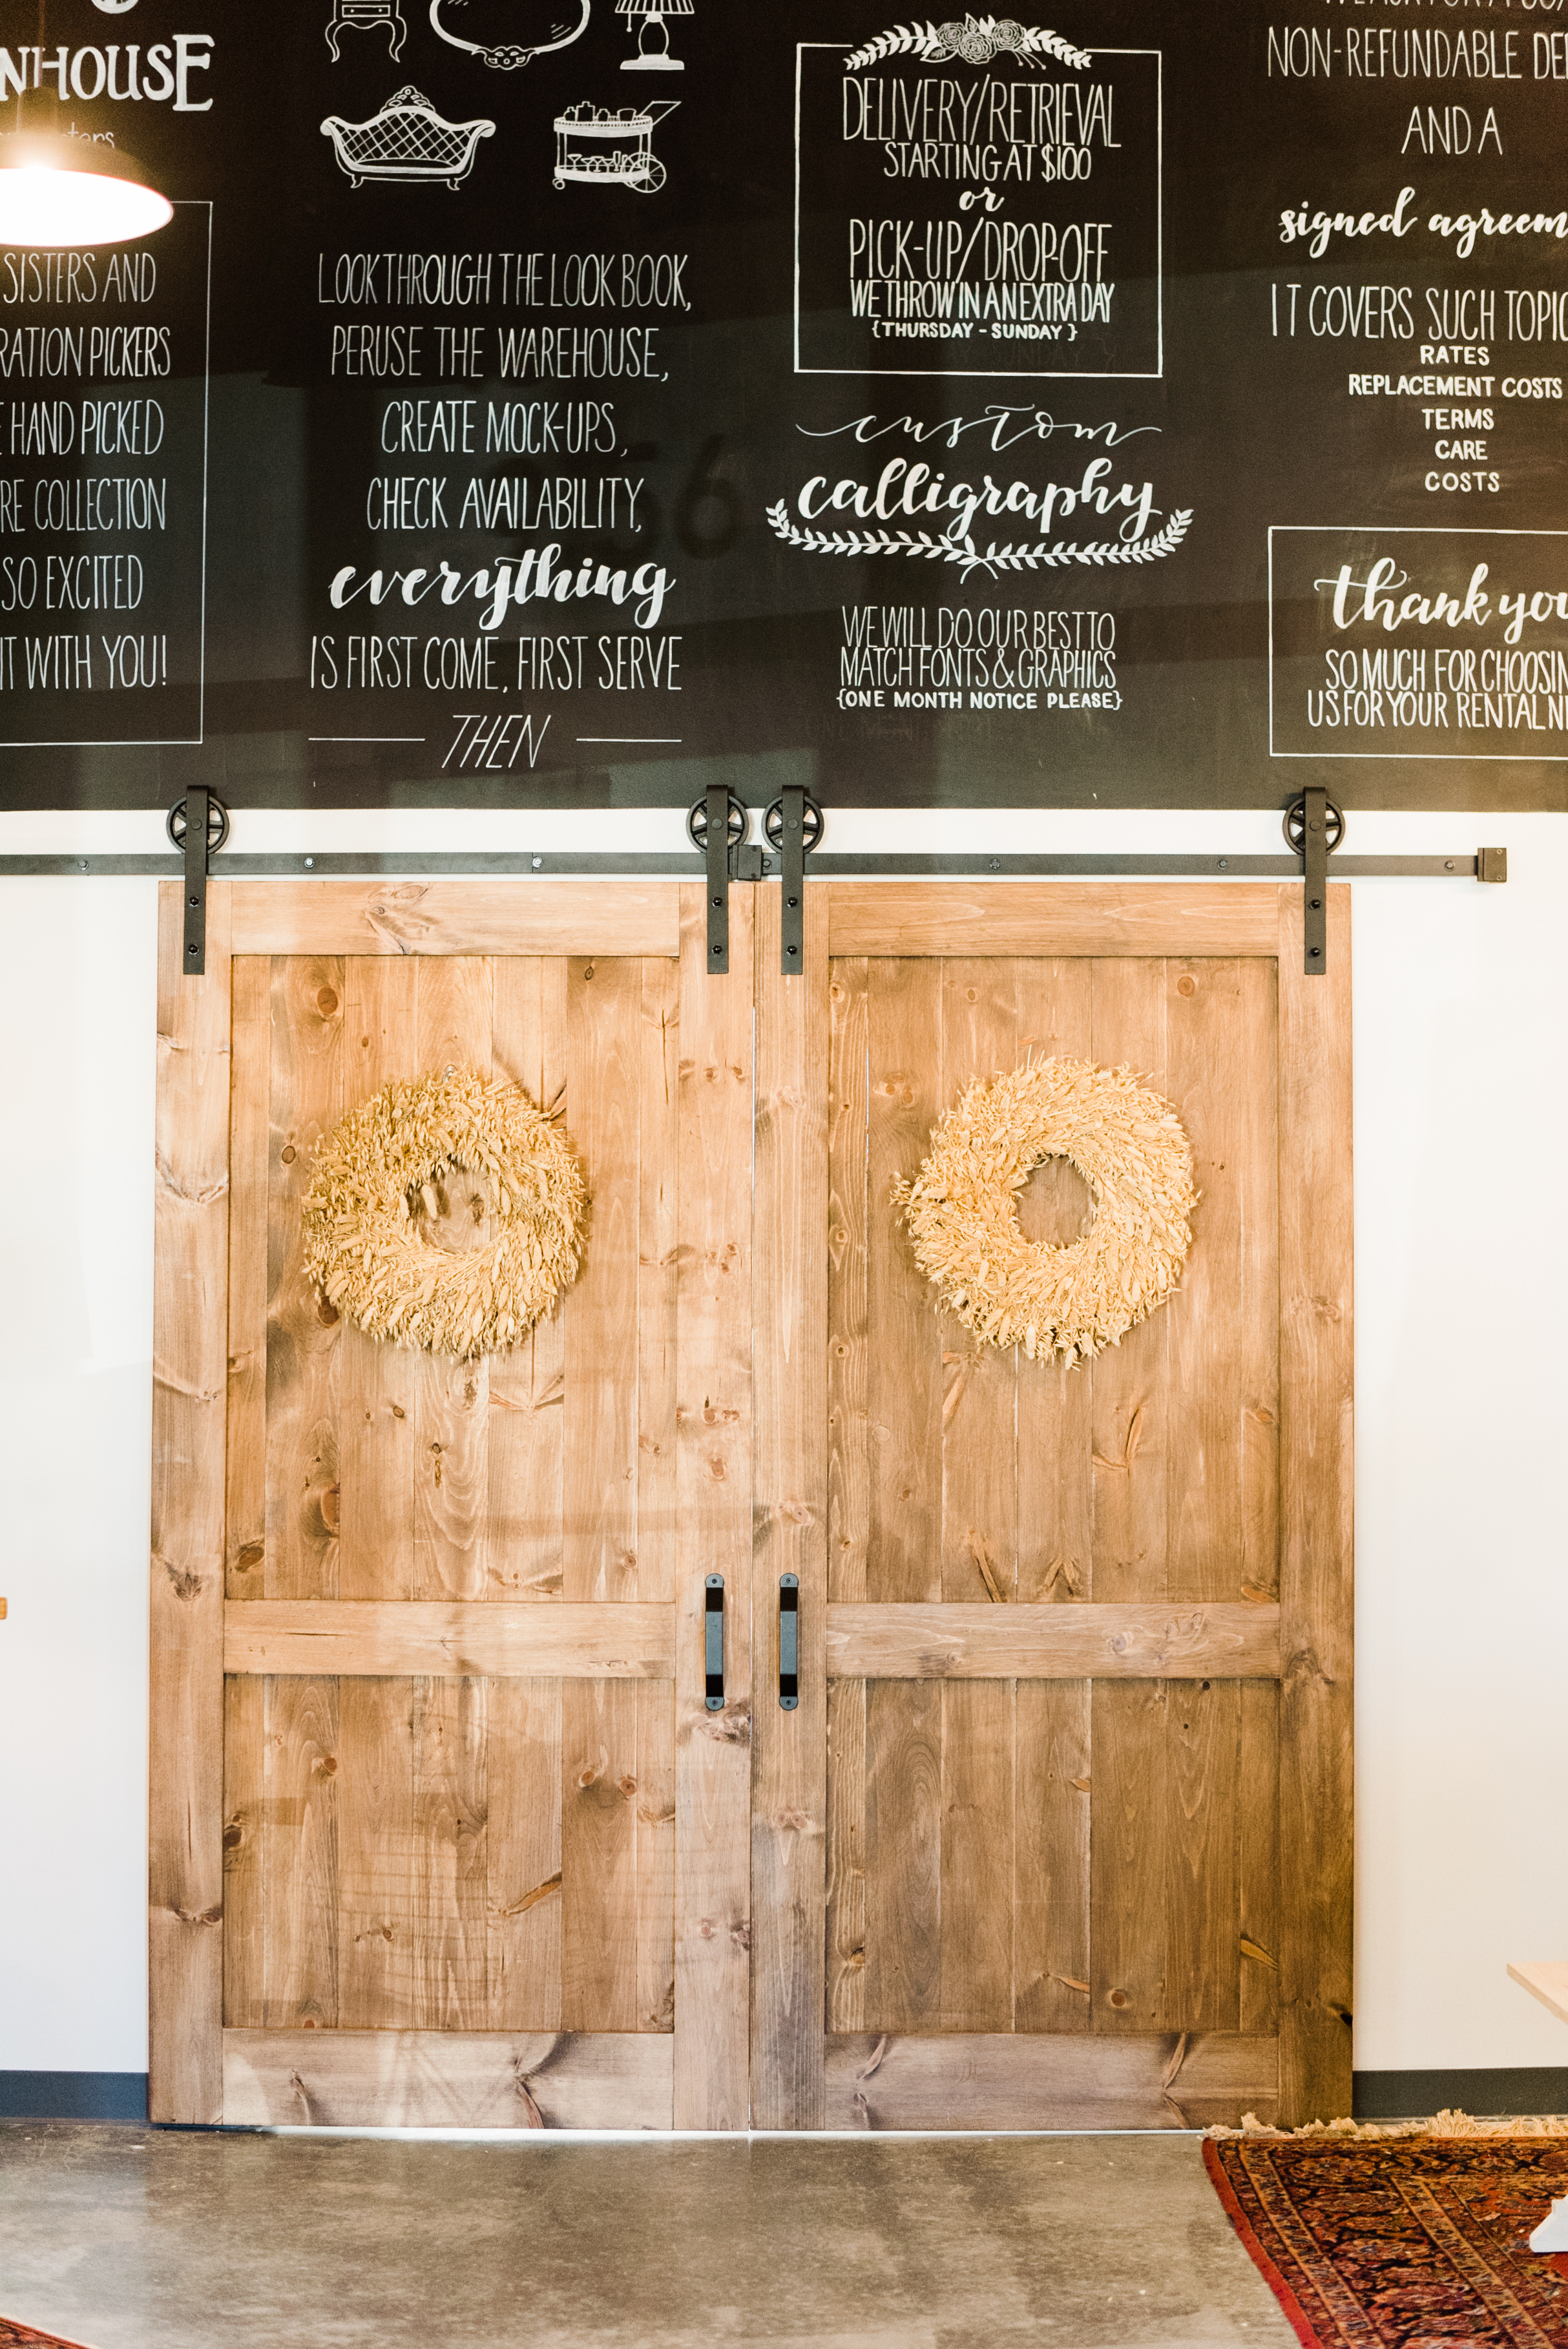 Venues with Chalkboards - The Cotton RoomThe RickhouseThe CookeryThe Stockroom